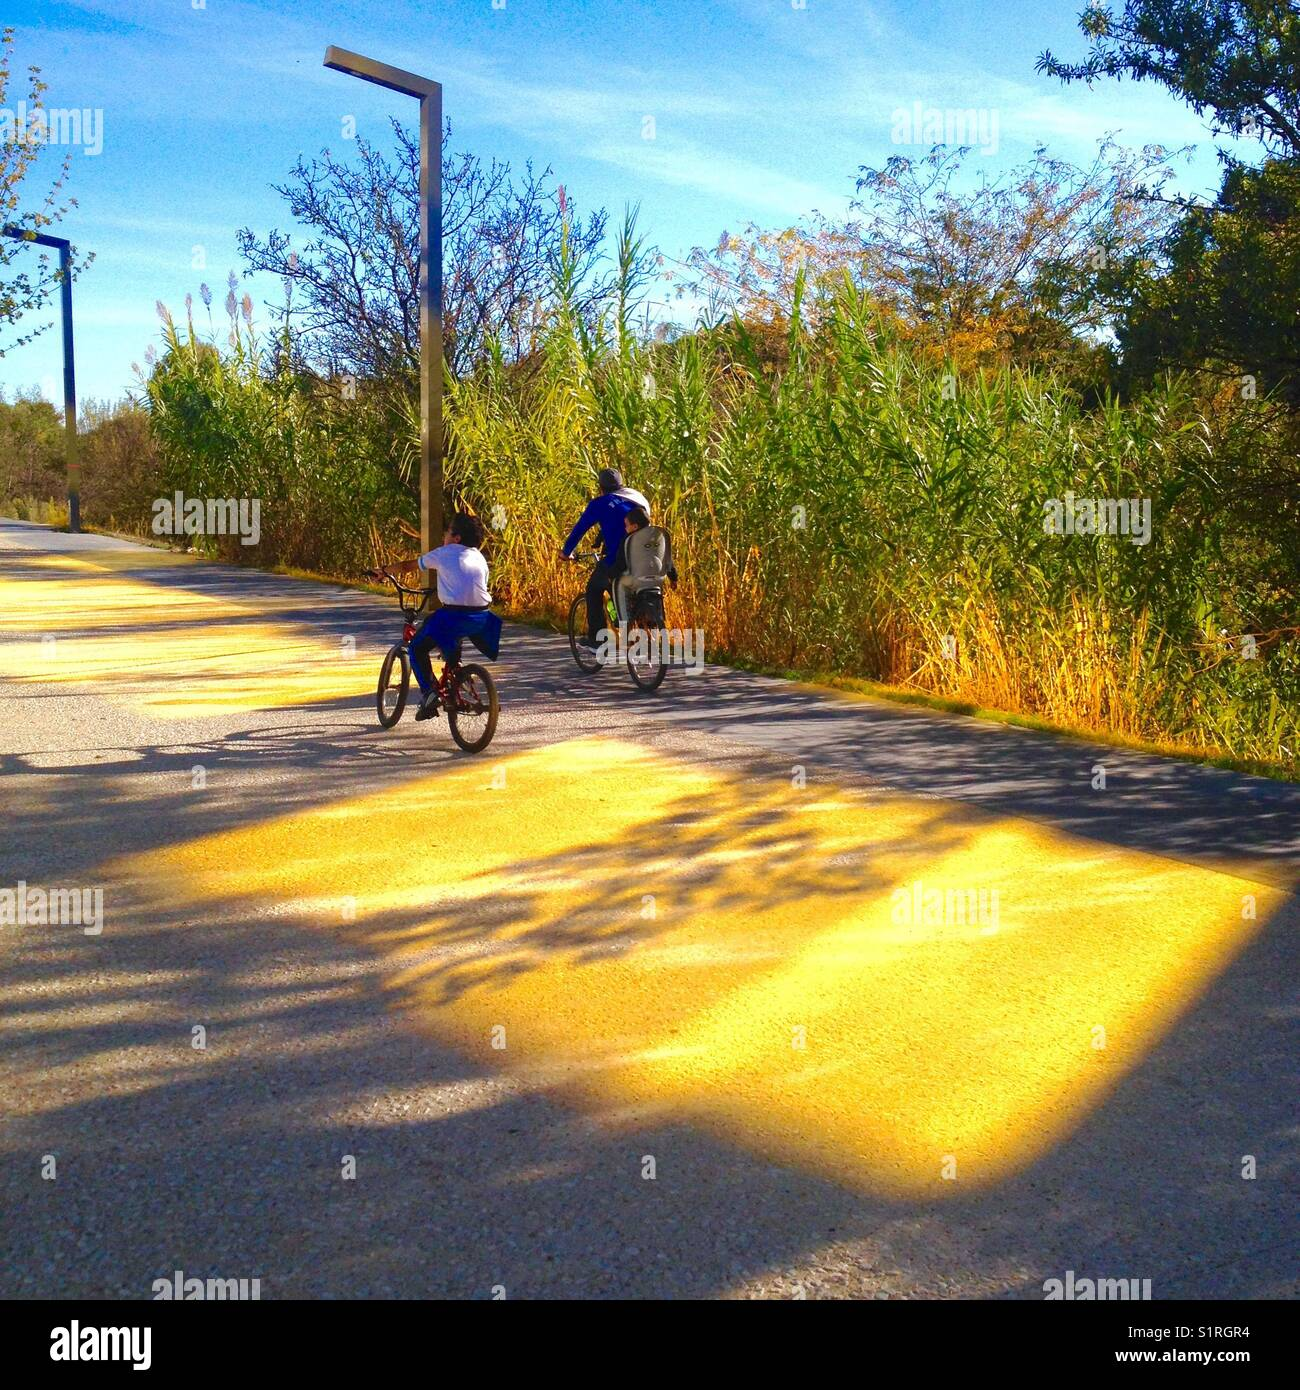 Cyclists passing in reflections of the Buidlding Koh-I-Noor, Port Marianne, Montpellier France - Stock Image